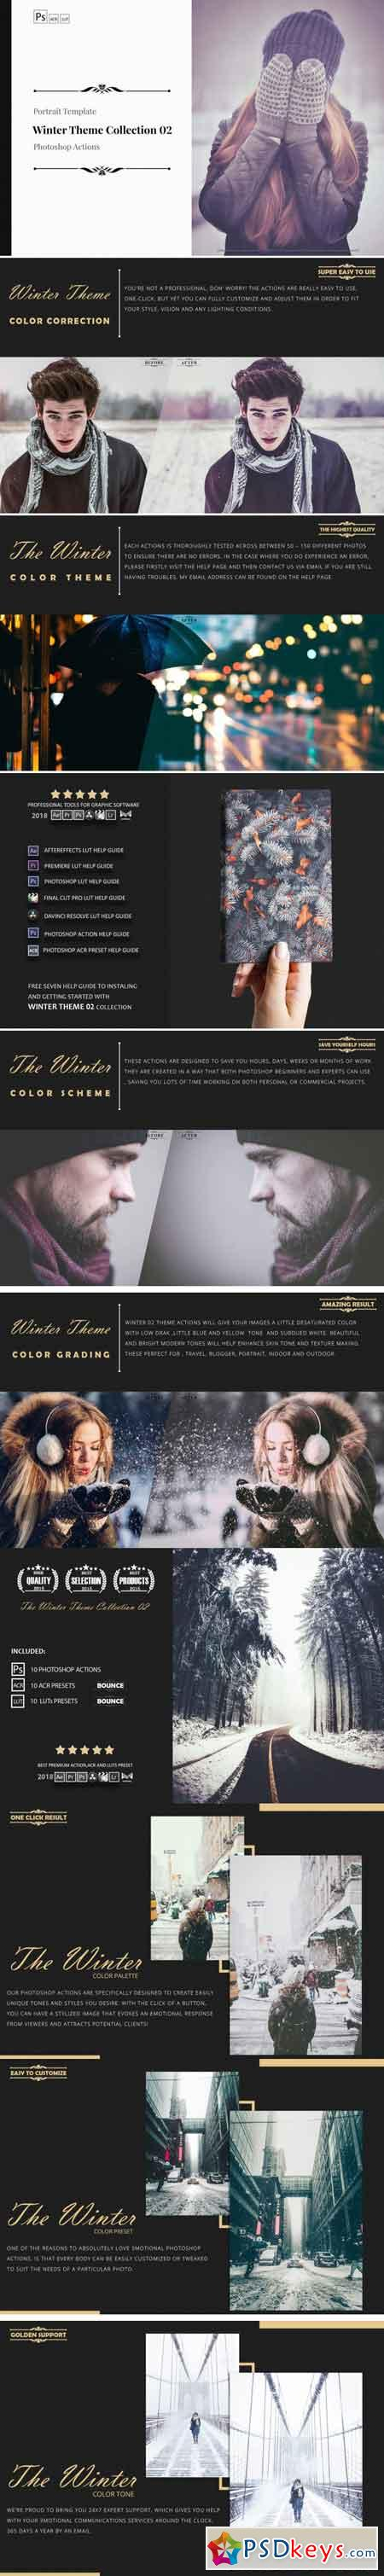 Winter Theme Color Grading Photoshop Actions Collection 02 3513223